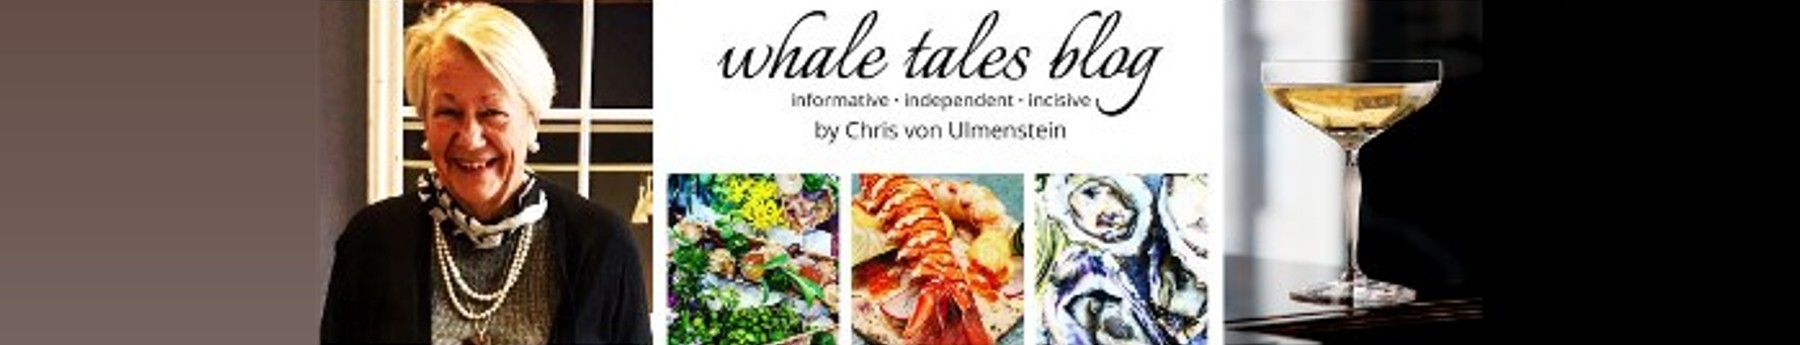 Whale Tales Blog